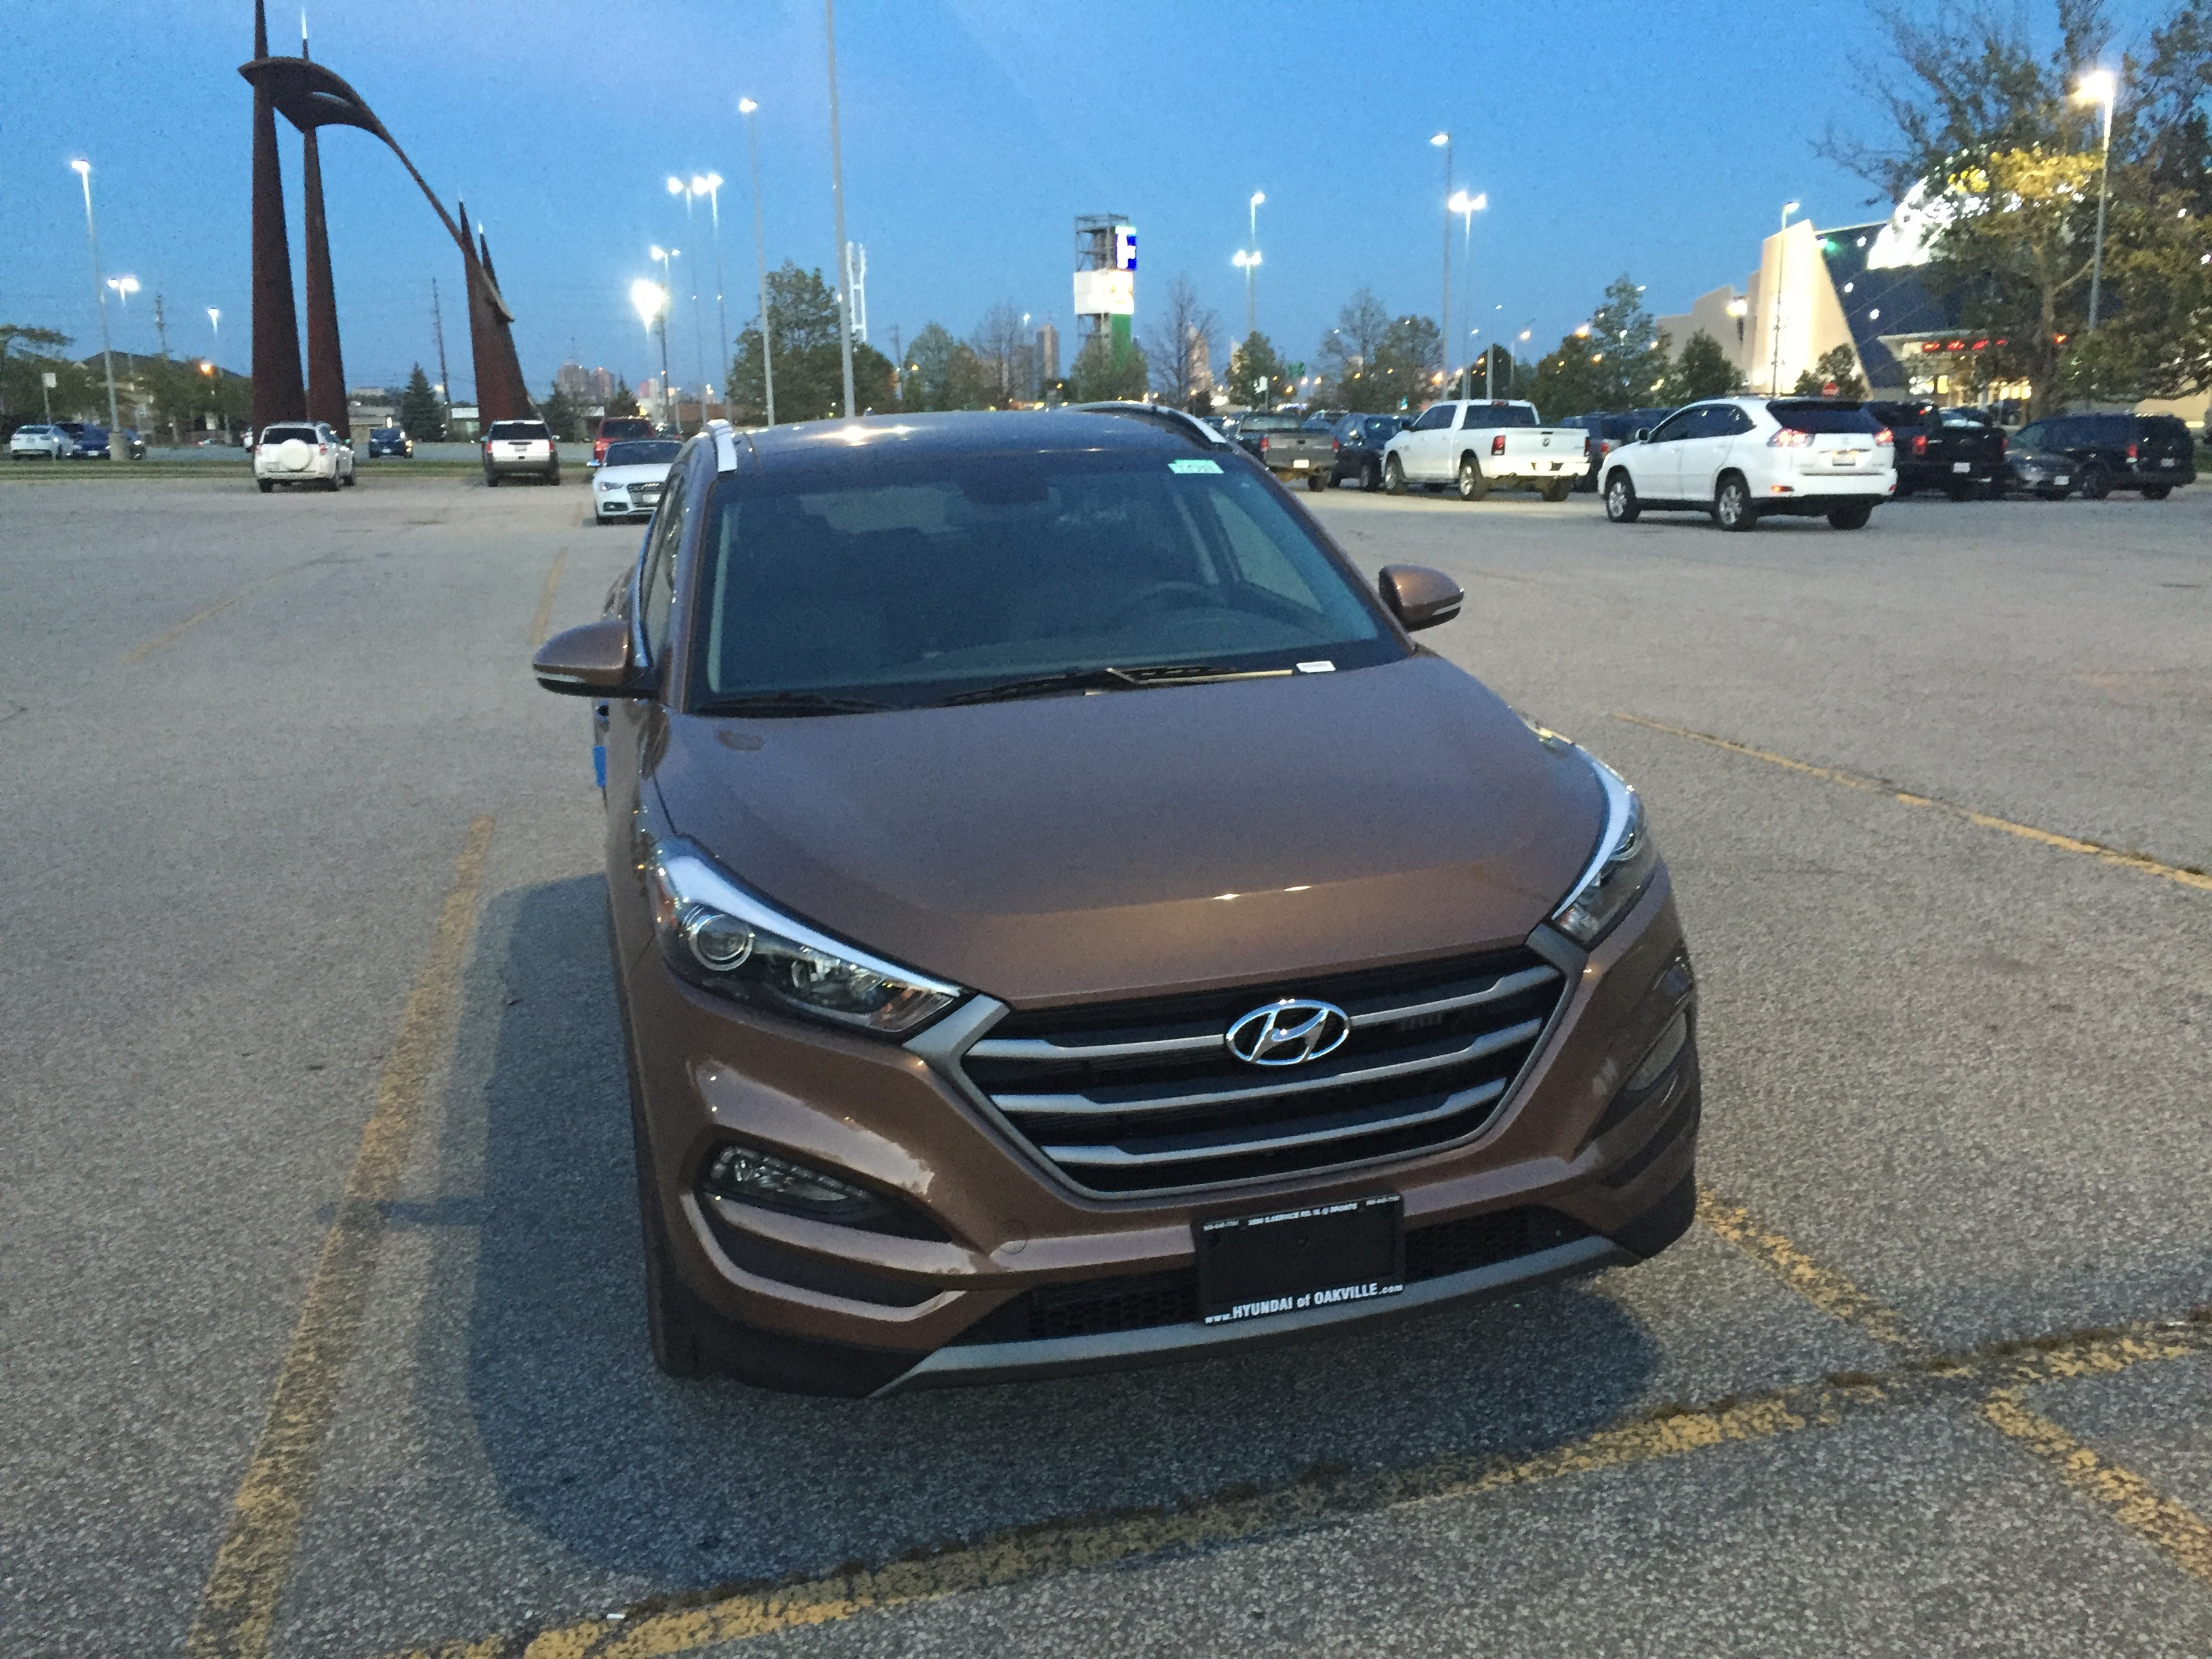 admit for tucson i and awd looks nerd to review front modern from that this updated of works have limited the a it calls look sharp img hyundai consider what fan really me vehicle